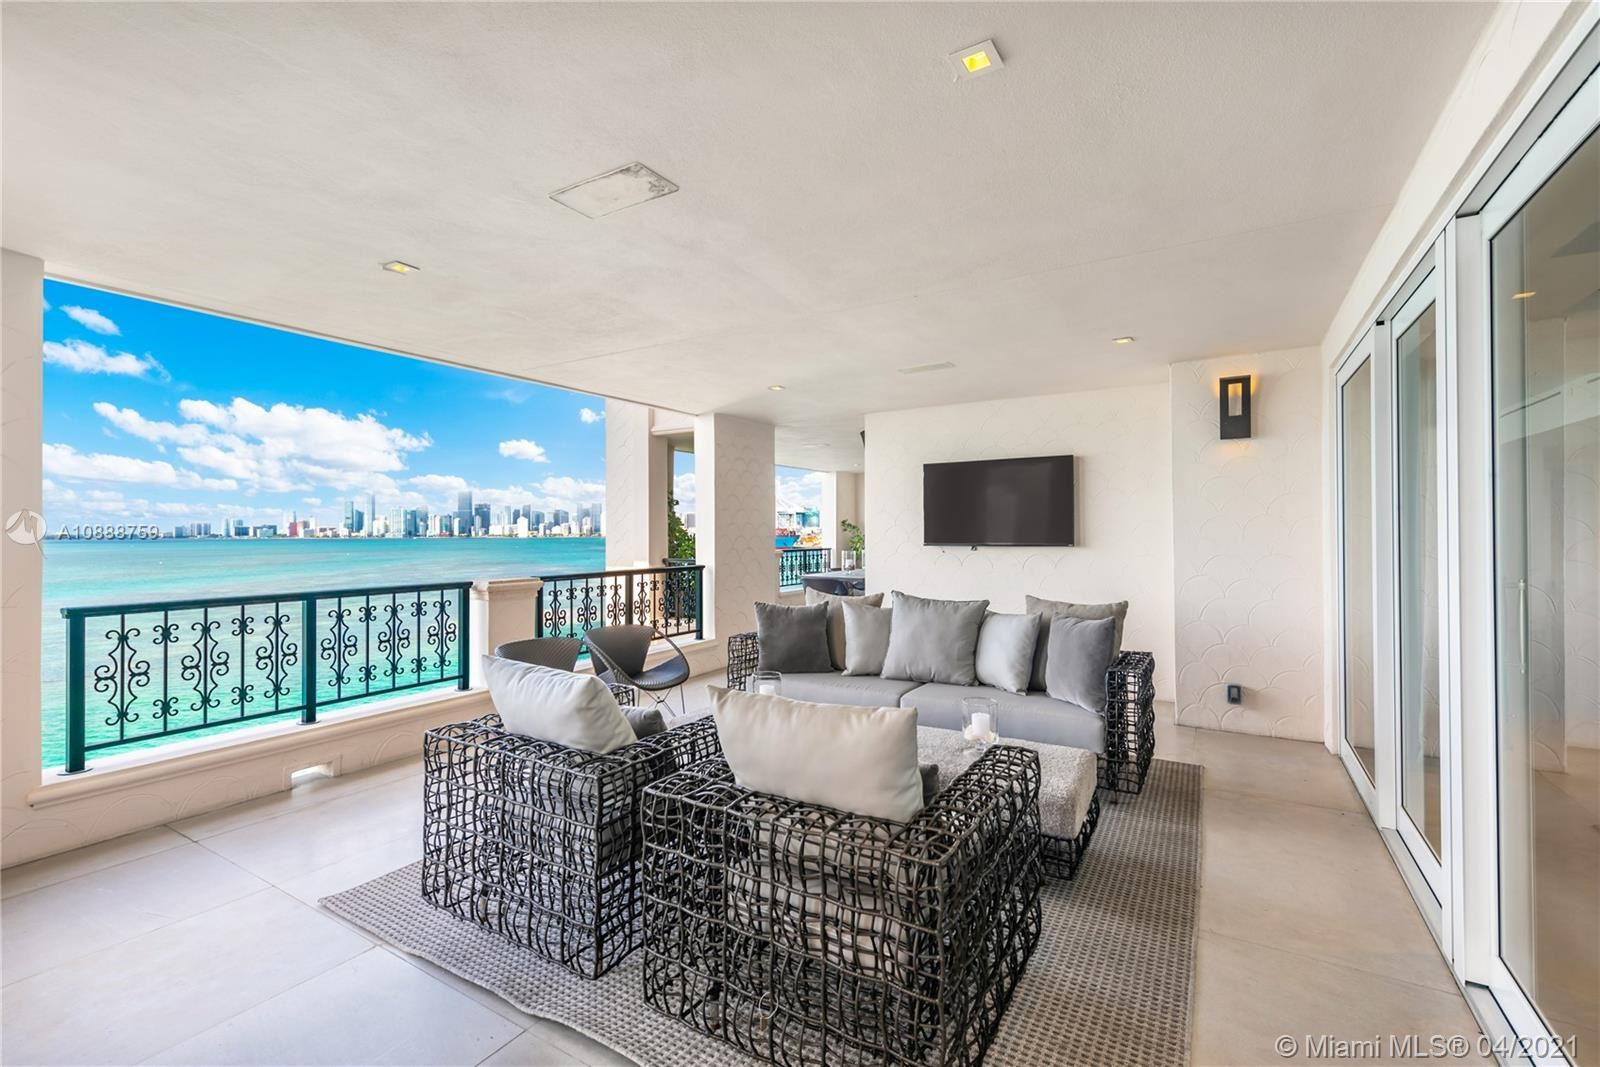 Photo 3 of Listing MLS a10888759 in 5282 Fisher Island Dr #5282 Miami FL 33109